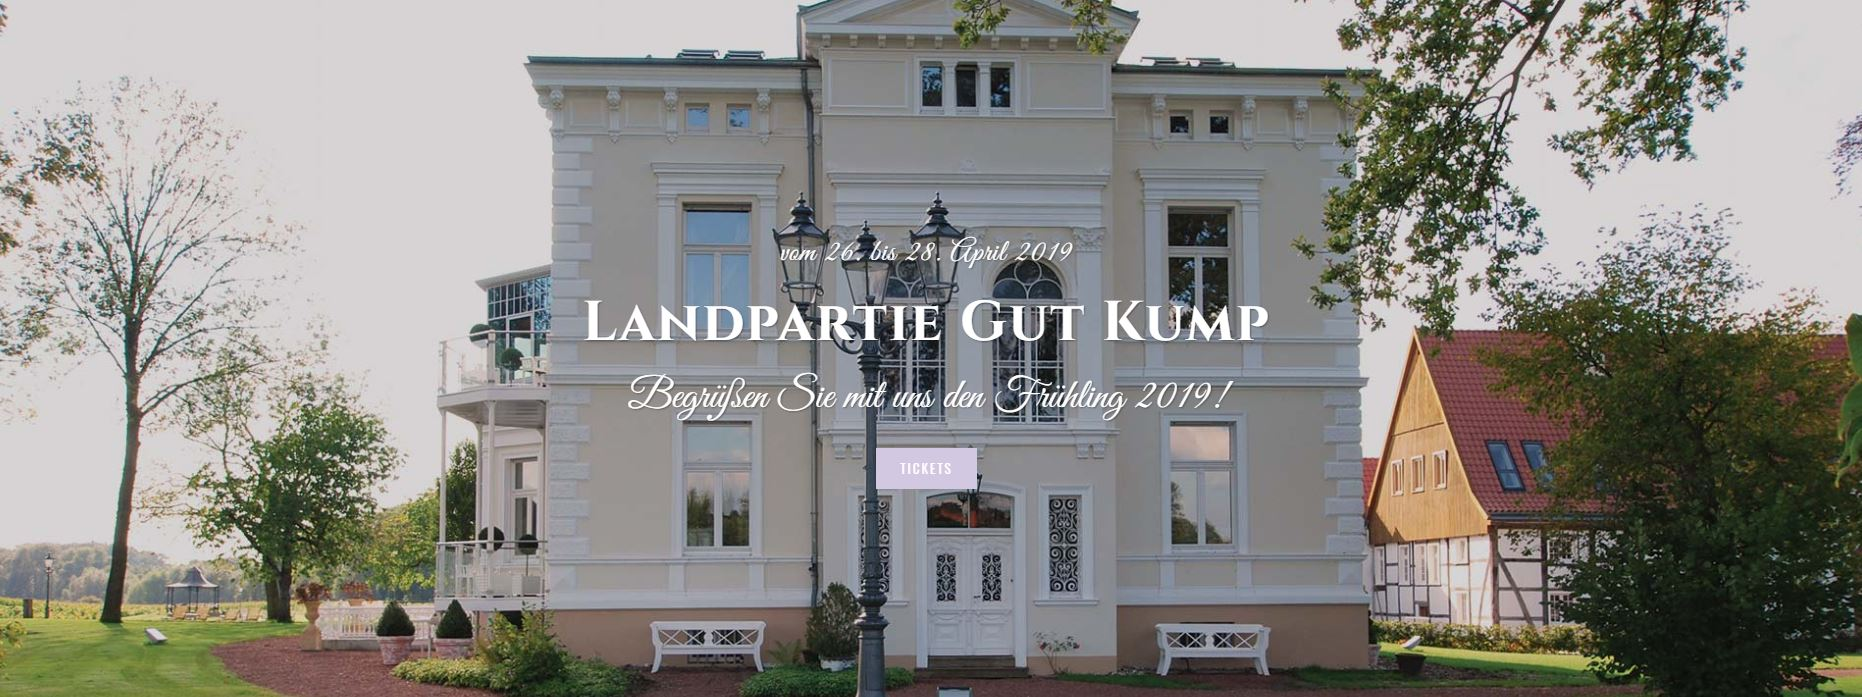 Landpartie Gut Kump